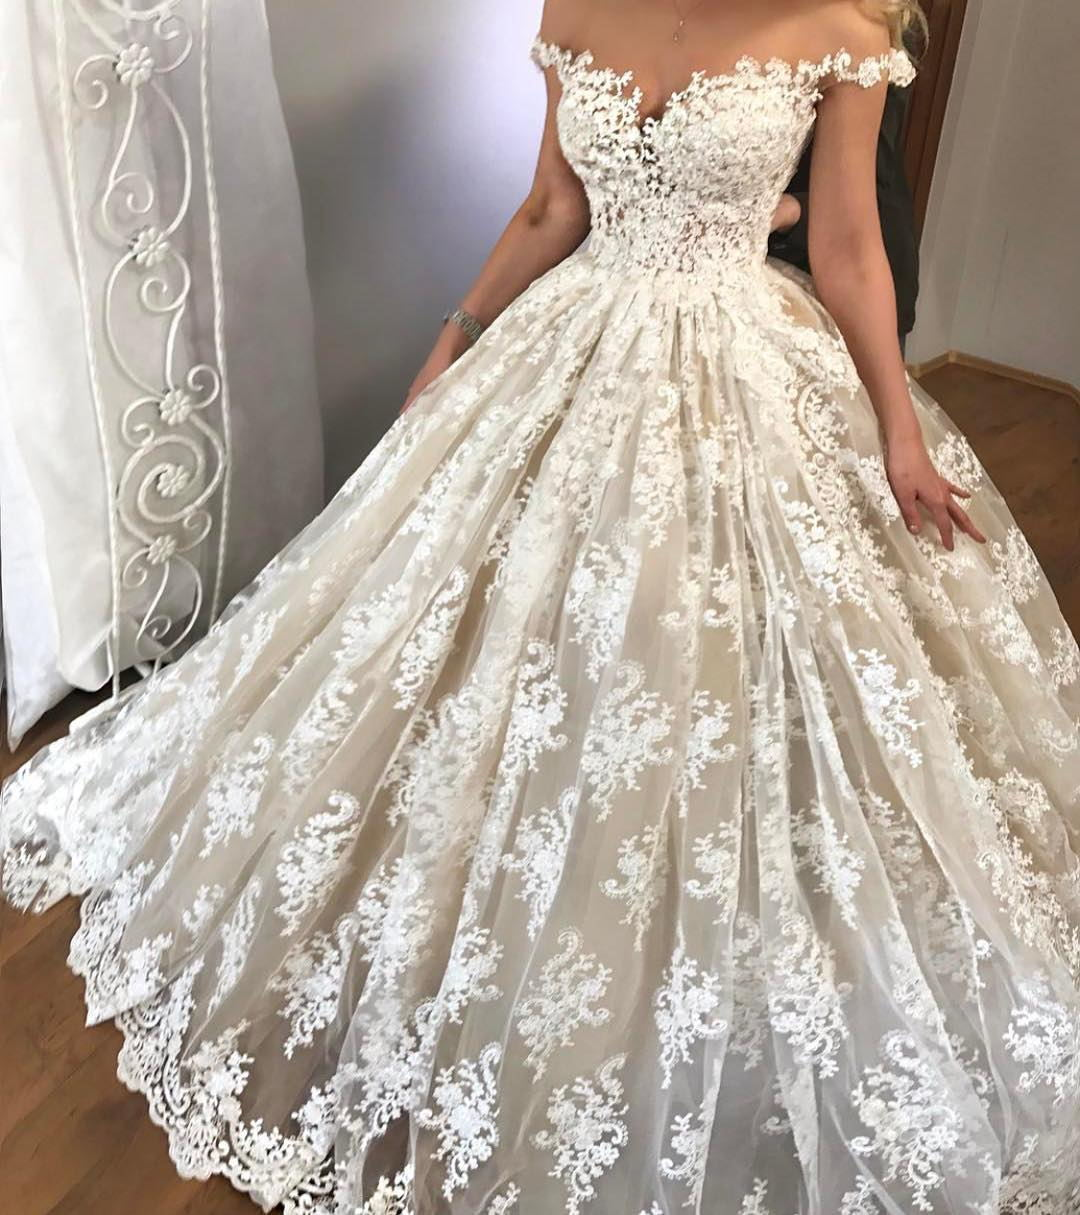 Sexy lace wedding dress off shoulder wedding dress for Off the shoulder ball gown wedding dress